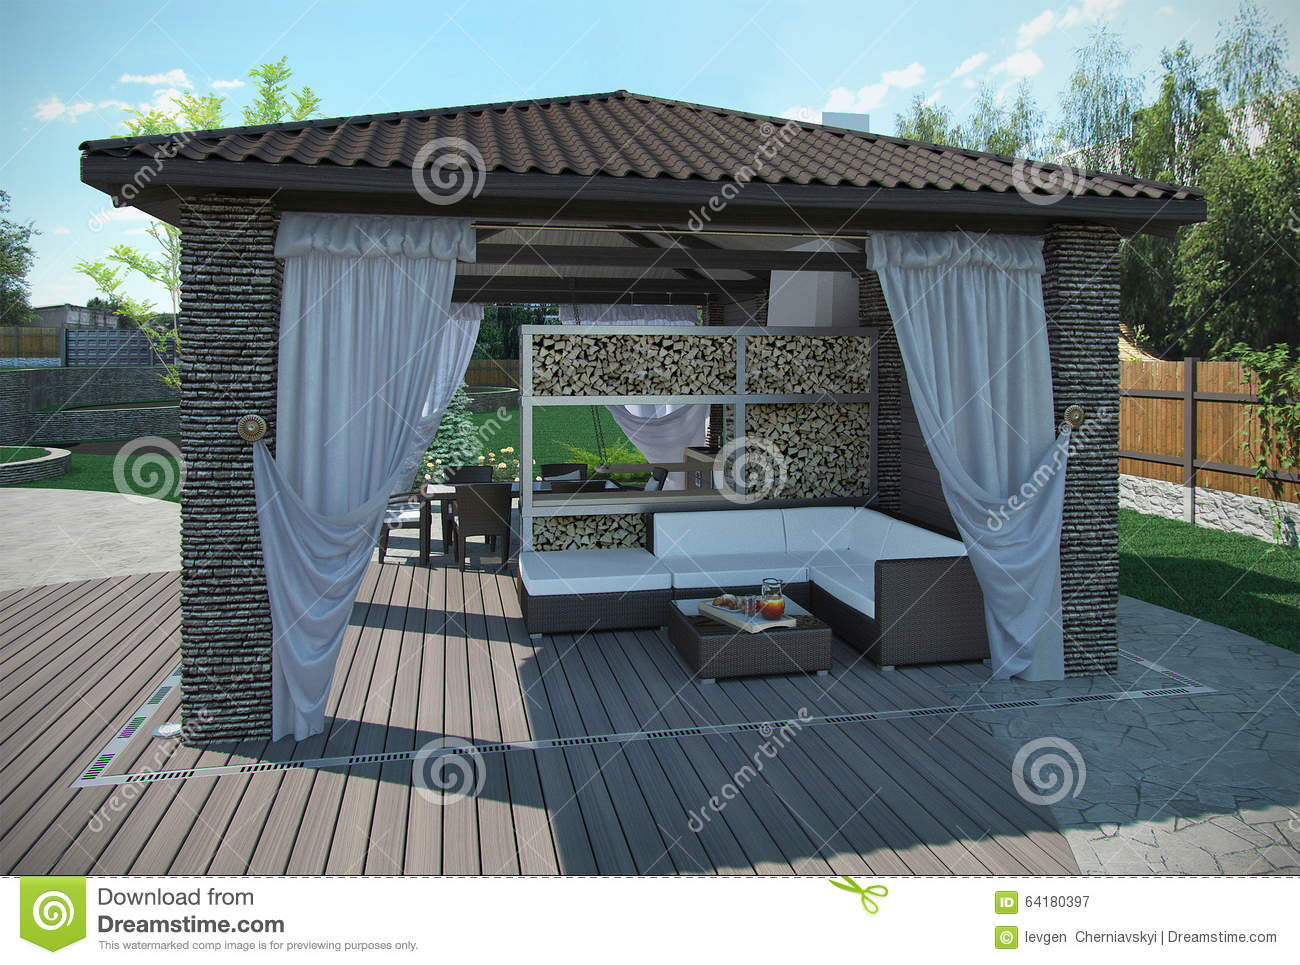 le pavillon ext rieur de jardin de patio 3d rendent illustration stock image 64180397. Black Bedroom Furniture Sets. Home Design Ideas